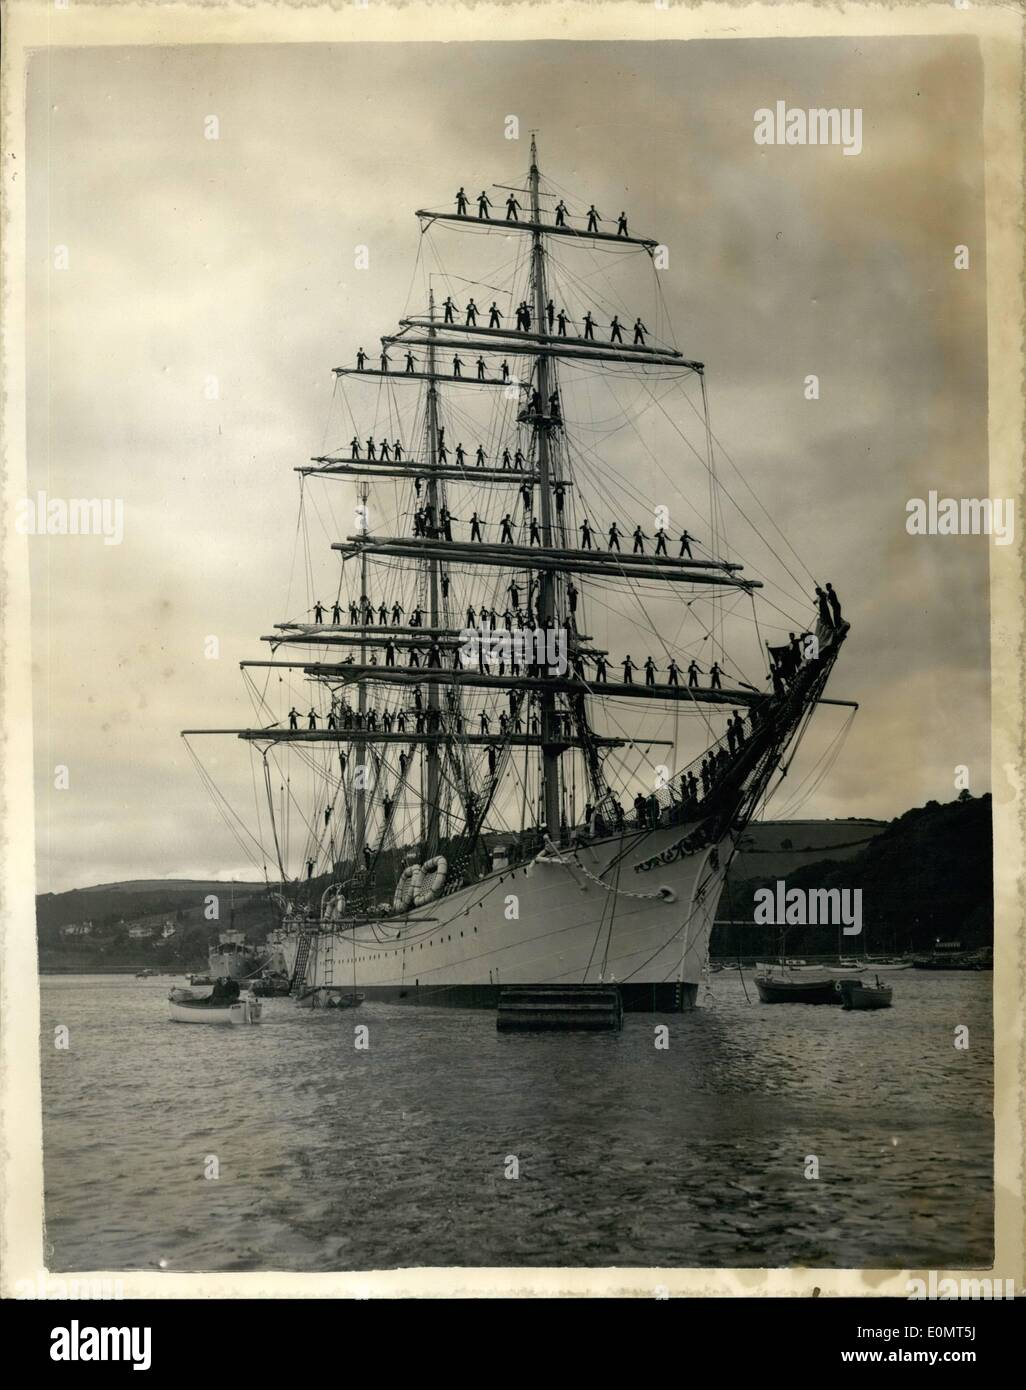 Jun. 06, 1956 - Portuguese sailing barque in the River Dart. Three cheers for the Mayor. The 3,000 ton Portuguese Sailing barque Sagres arrived in the River Dart yesterday. in readiness for the training ship race back to Lisbon. The picturesque vessel is under the command of Capt. L. Dentinho of the Portuguese Navy. Keystone Photo Shows: - The Sagres in the River Dart. as her yardarms are manned by the crew. giving three rousing cheers for the Mayor of Dartmouth. JSS/Keystone. - Stock Image